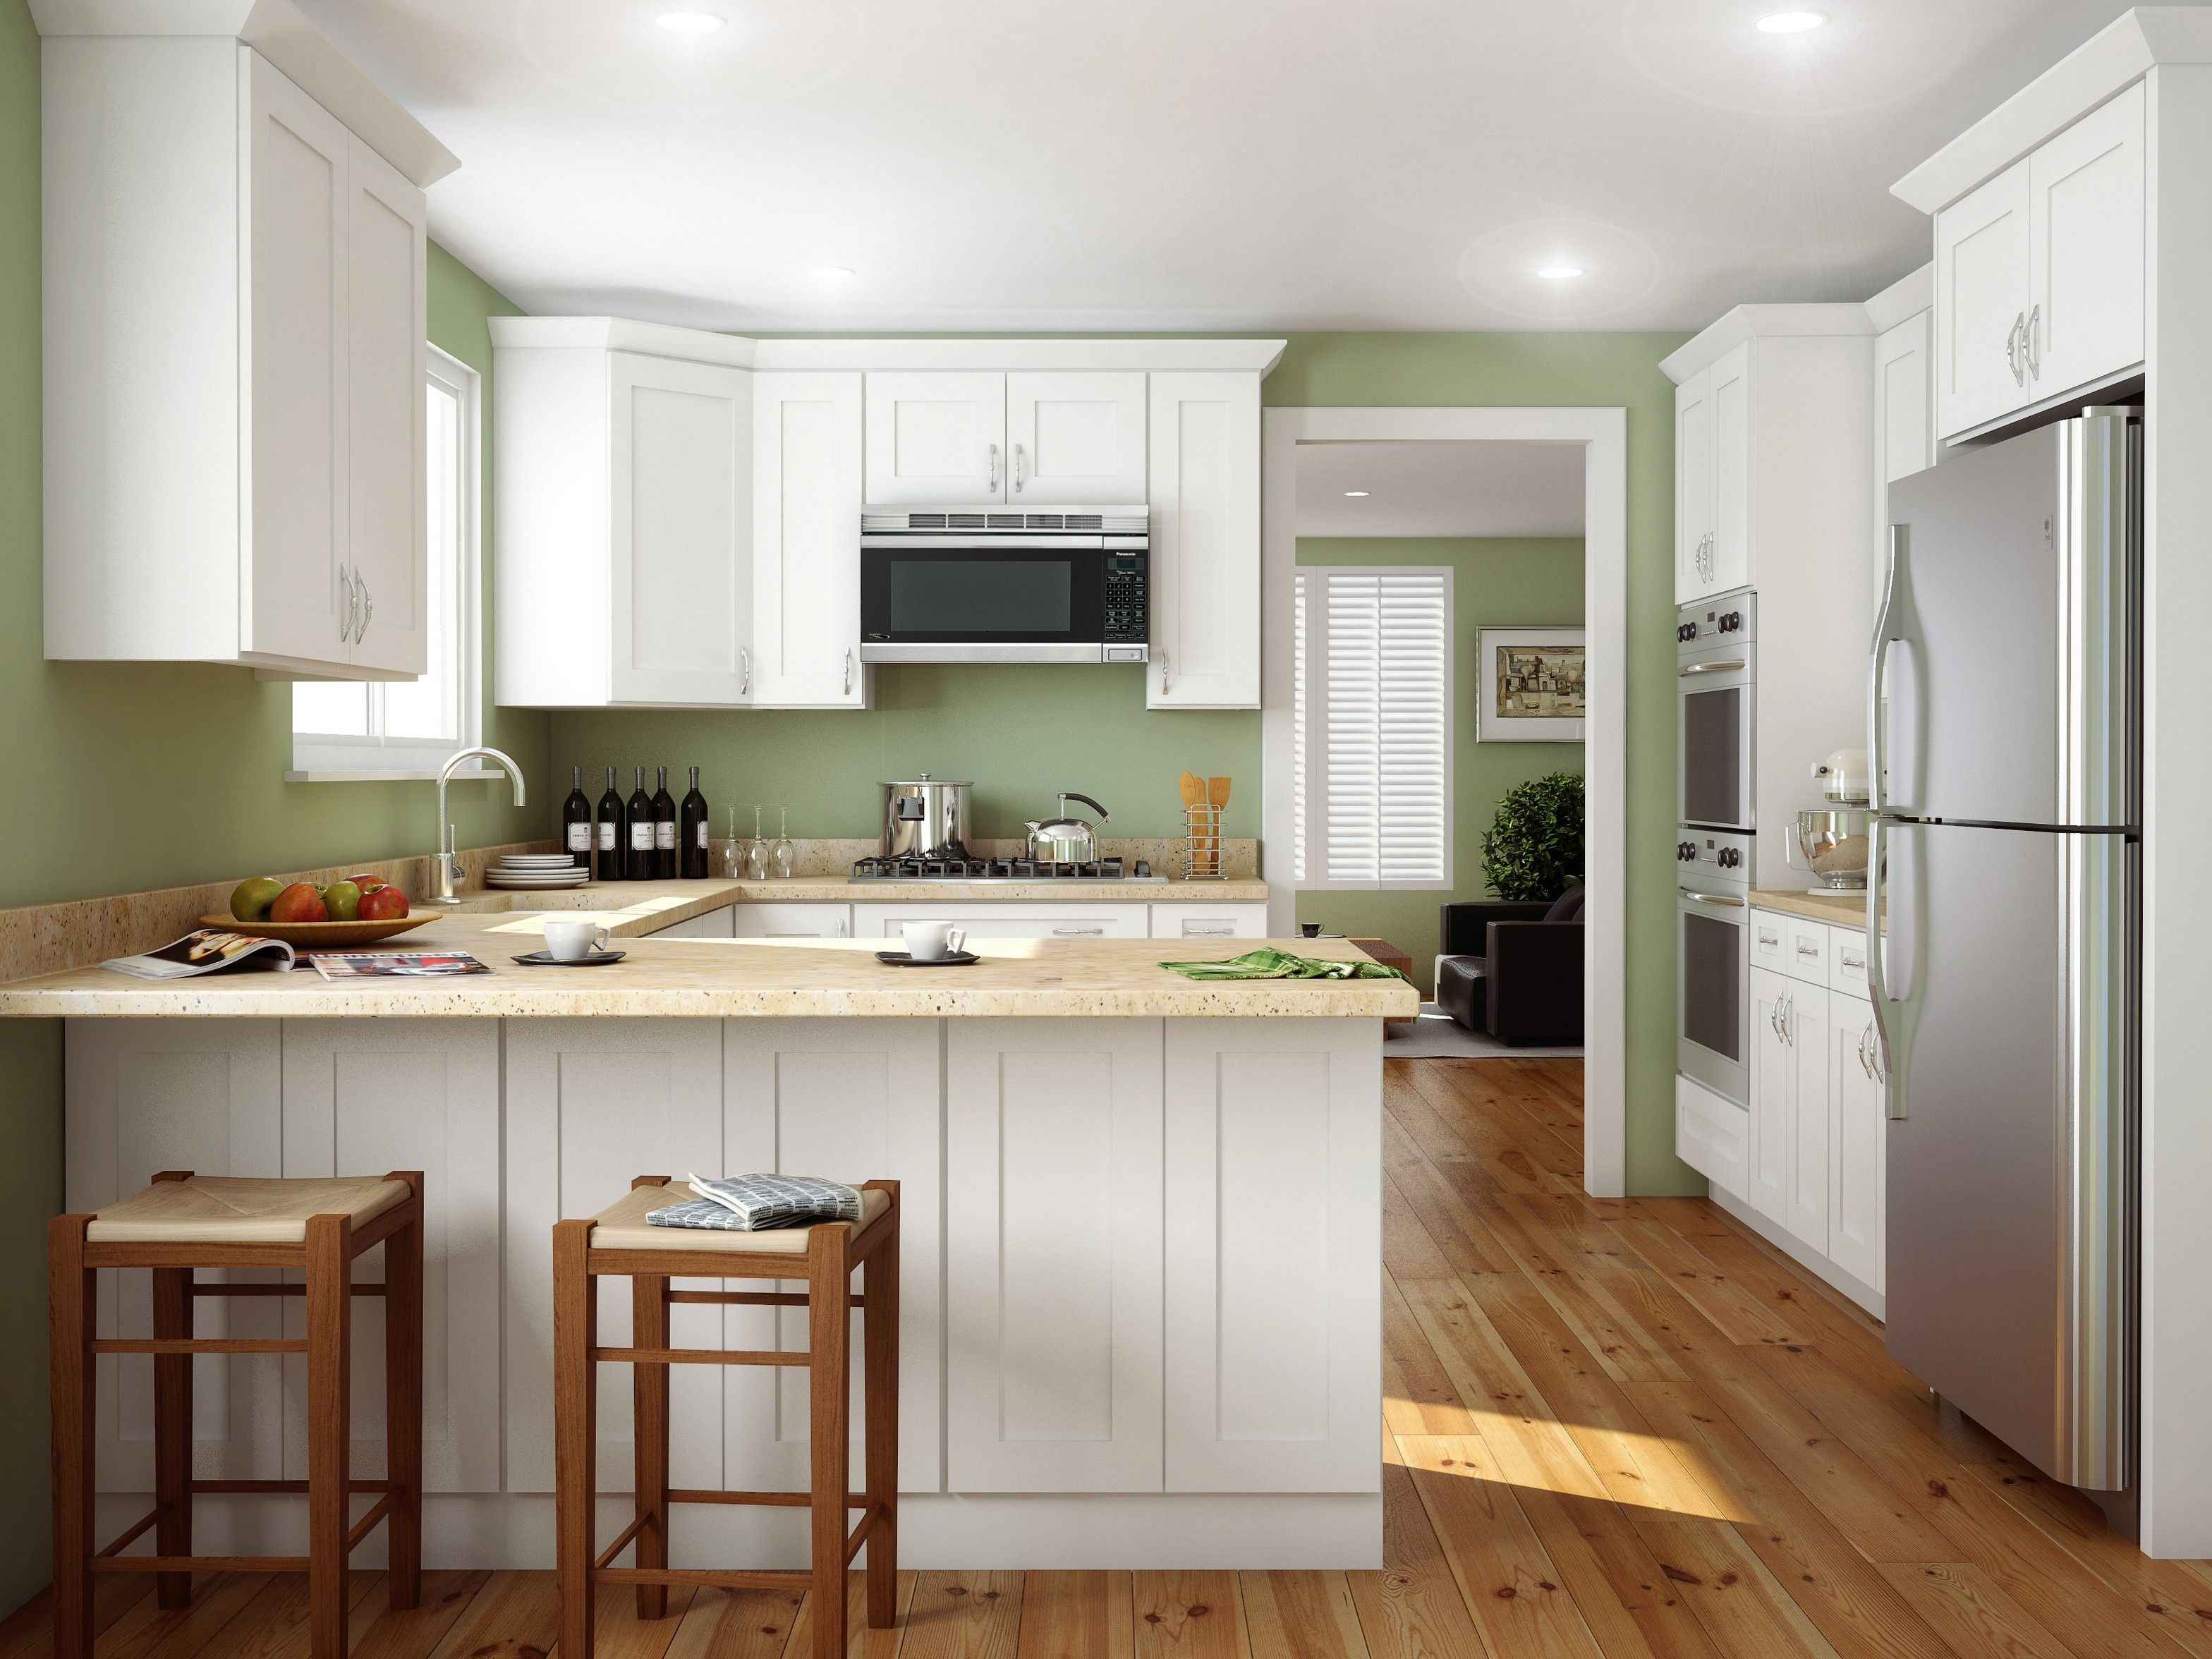 Best 7 Kitchen Remodeling Tips For Home Sellers Kitchen 400 x 300